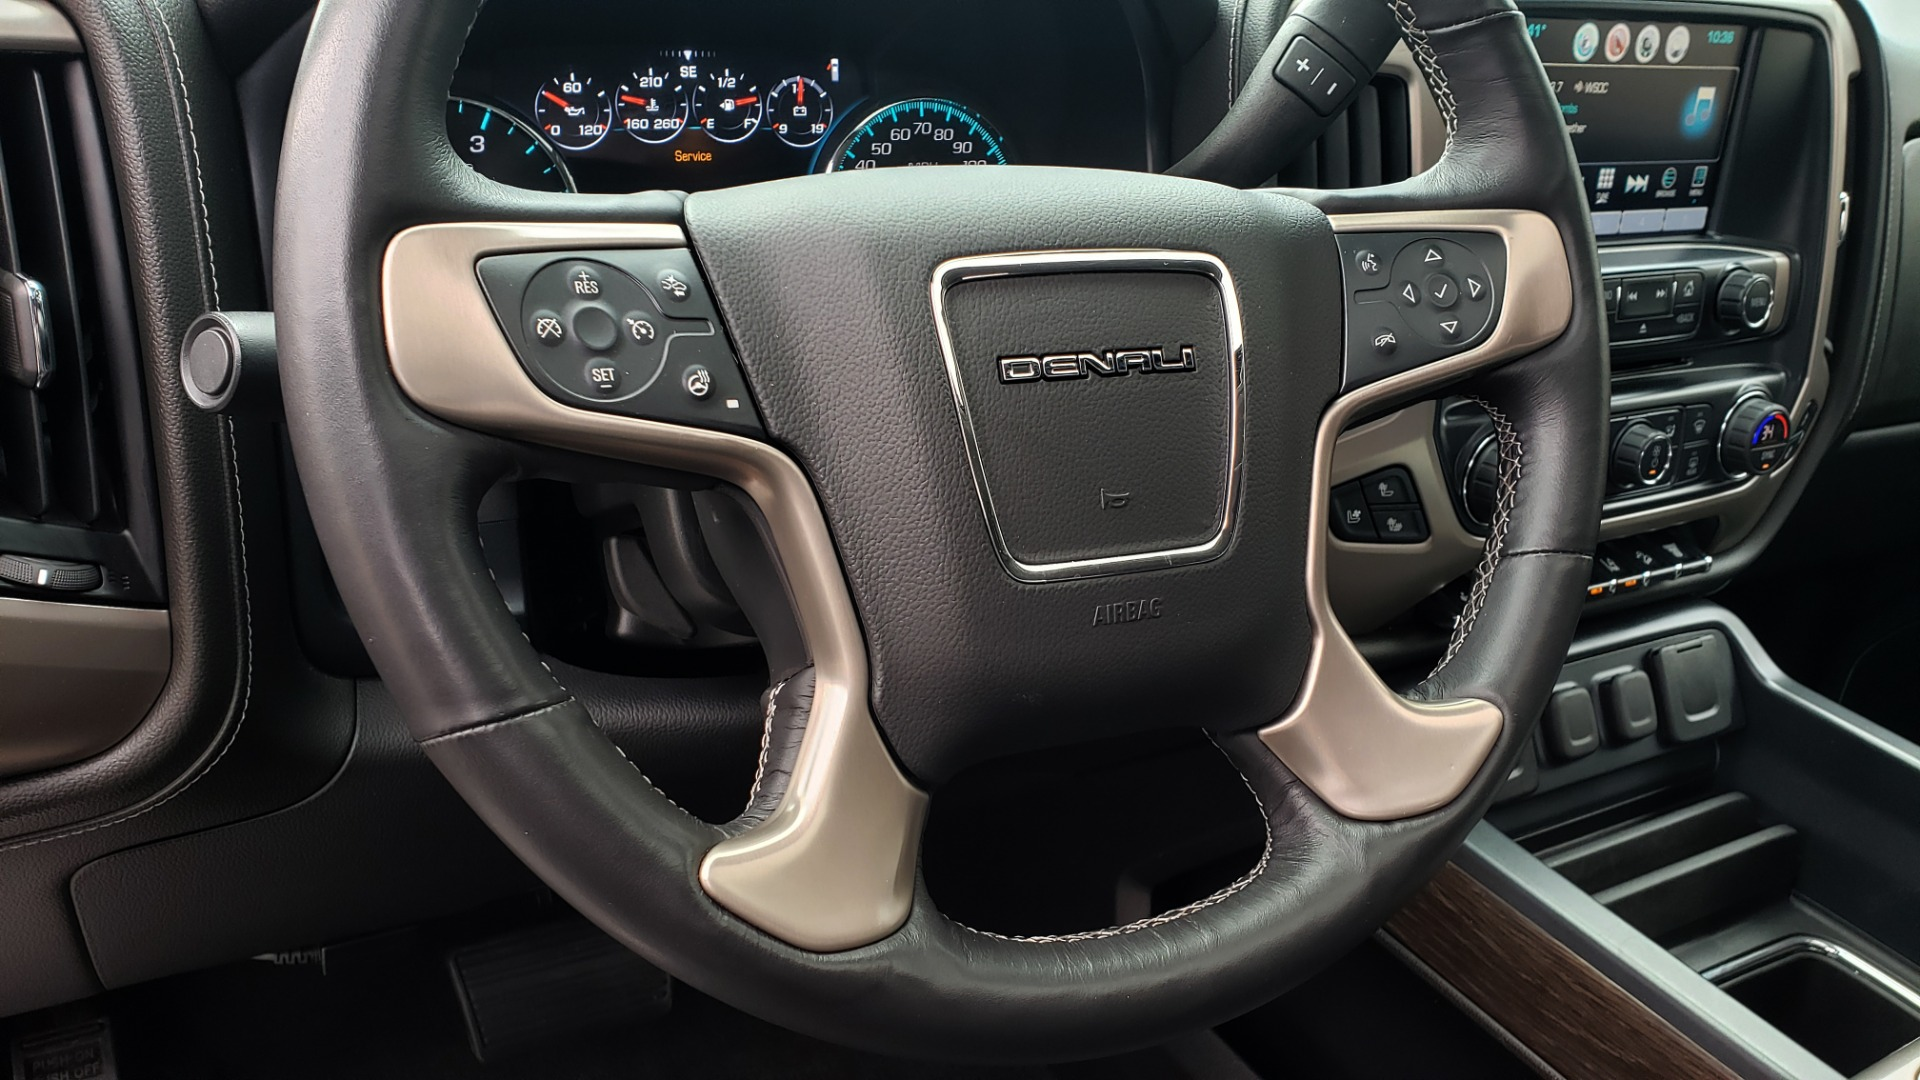 Used 2018 GMC SIERRA 2500HD DENALI 4X4 CREWCAB / 6.6L DURAMAX PLUS / NAV / SUNROOF / REARVIEW for sale $61,999 at Formula Imports in Charlotte NC 28227 41